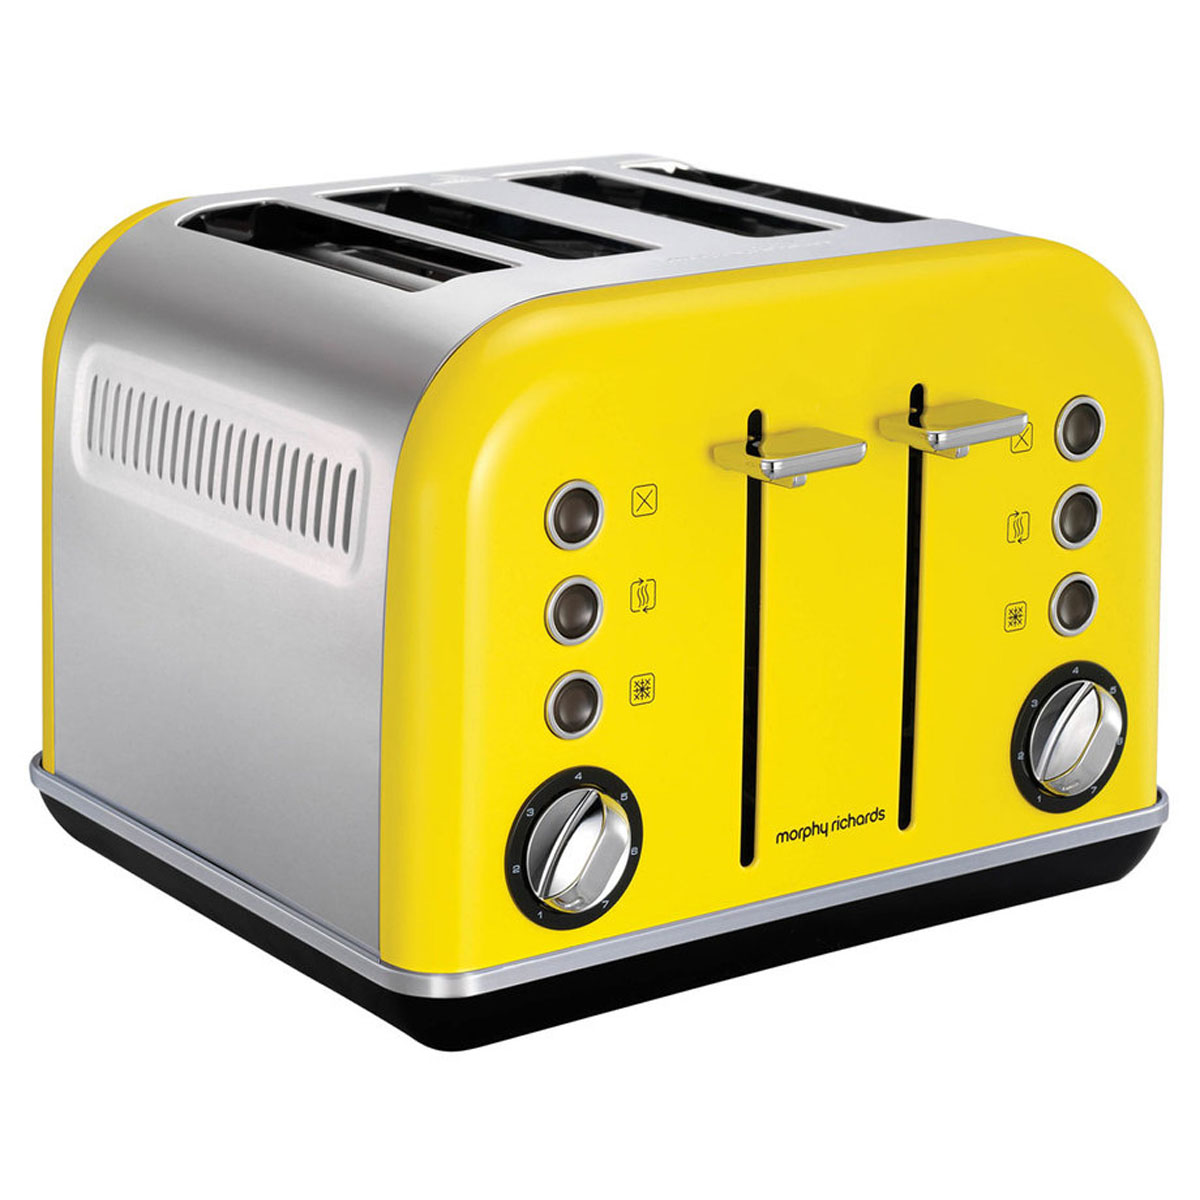 Morphy Richards 242025 Accents Toaster